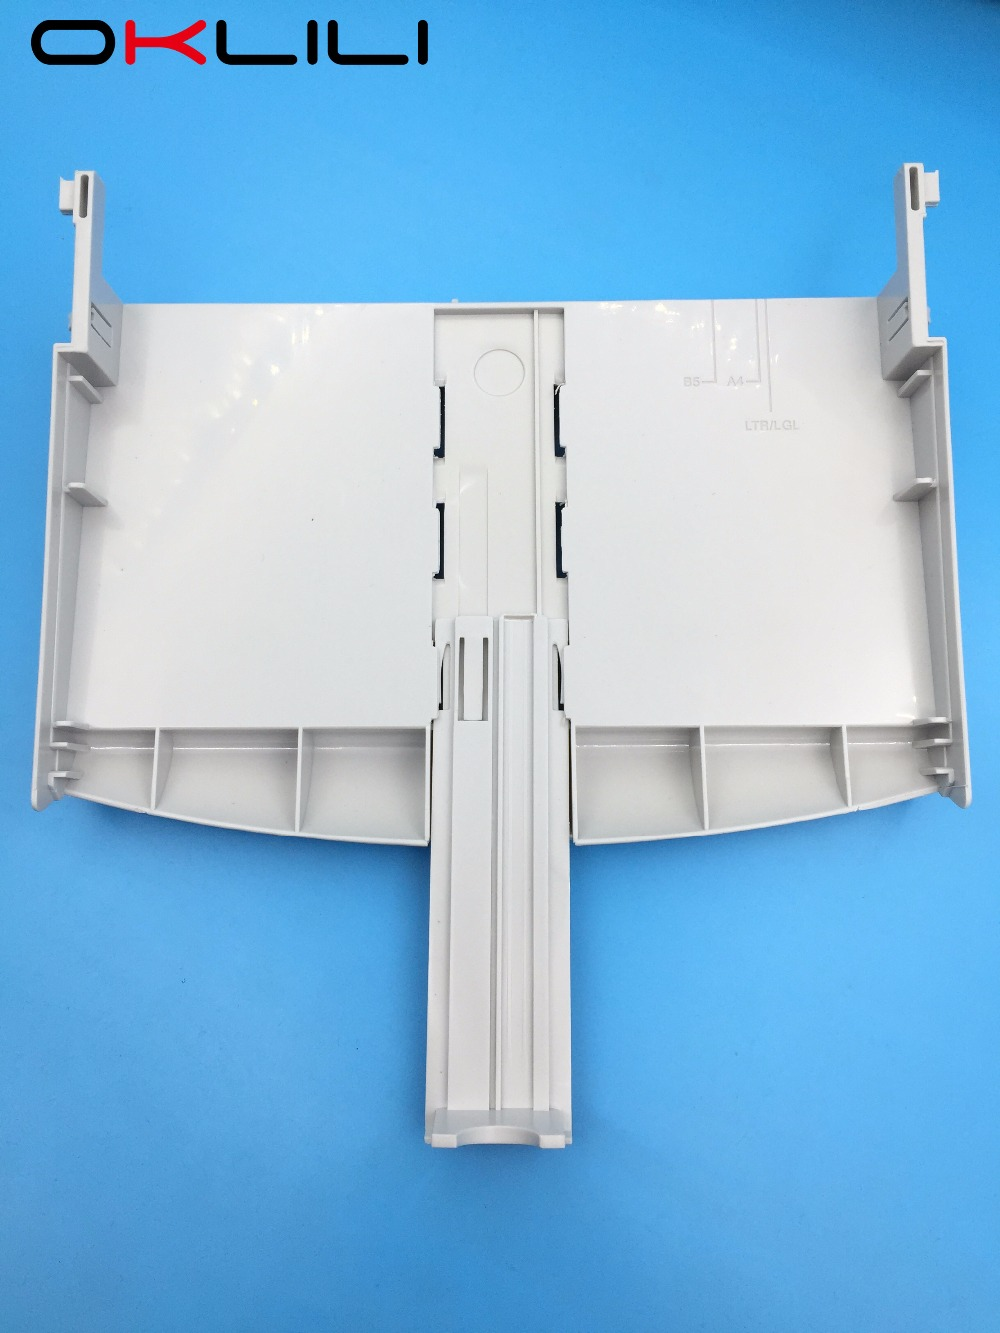 купить  RG0-1121-000 RG0-1013 RG0-1013-000 RM1-0553 RM1-0554 Paper Input Tray for HP 1000 1200 1220 1300 1150 3300 3310 3320 3330 3380  недорого